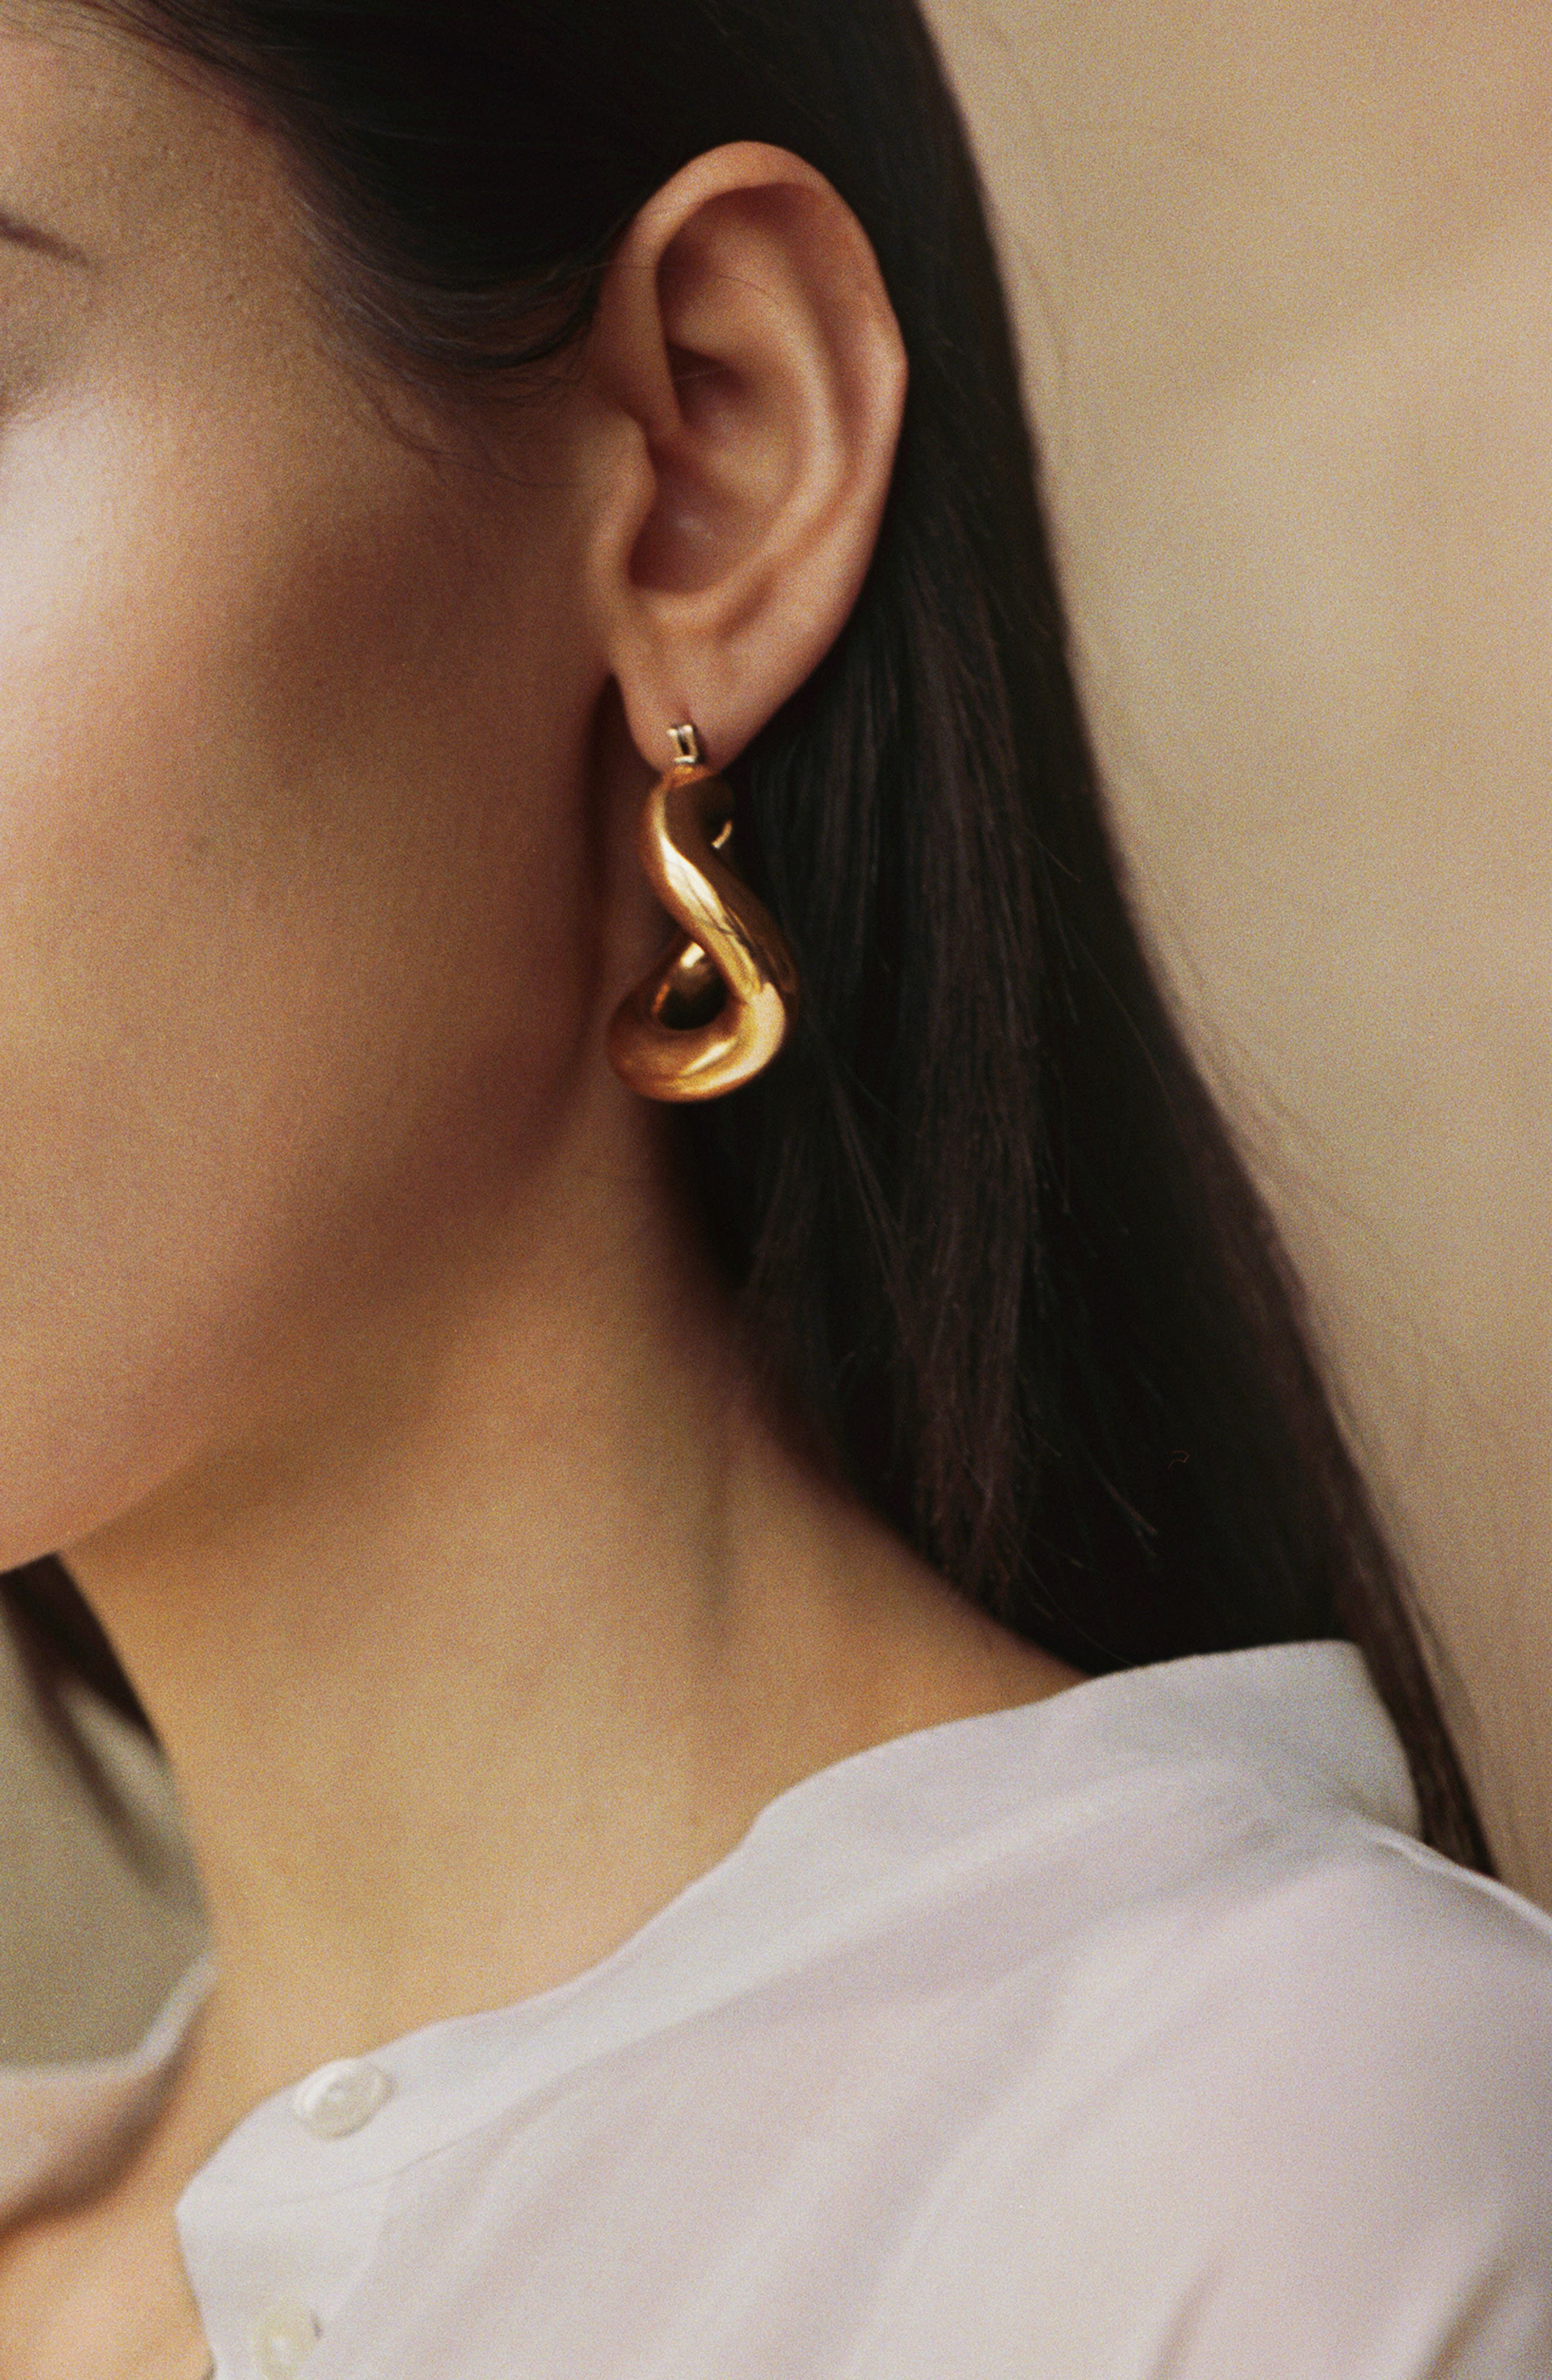 Anima Earrings,                             Alternate thumbnail 2, color,                             BRASS